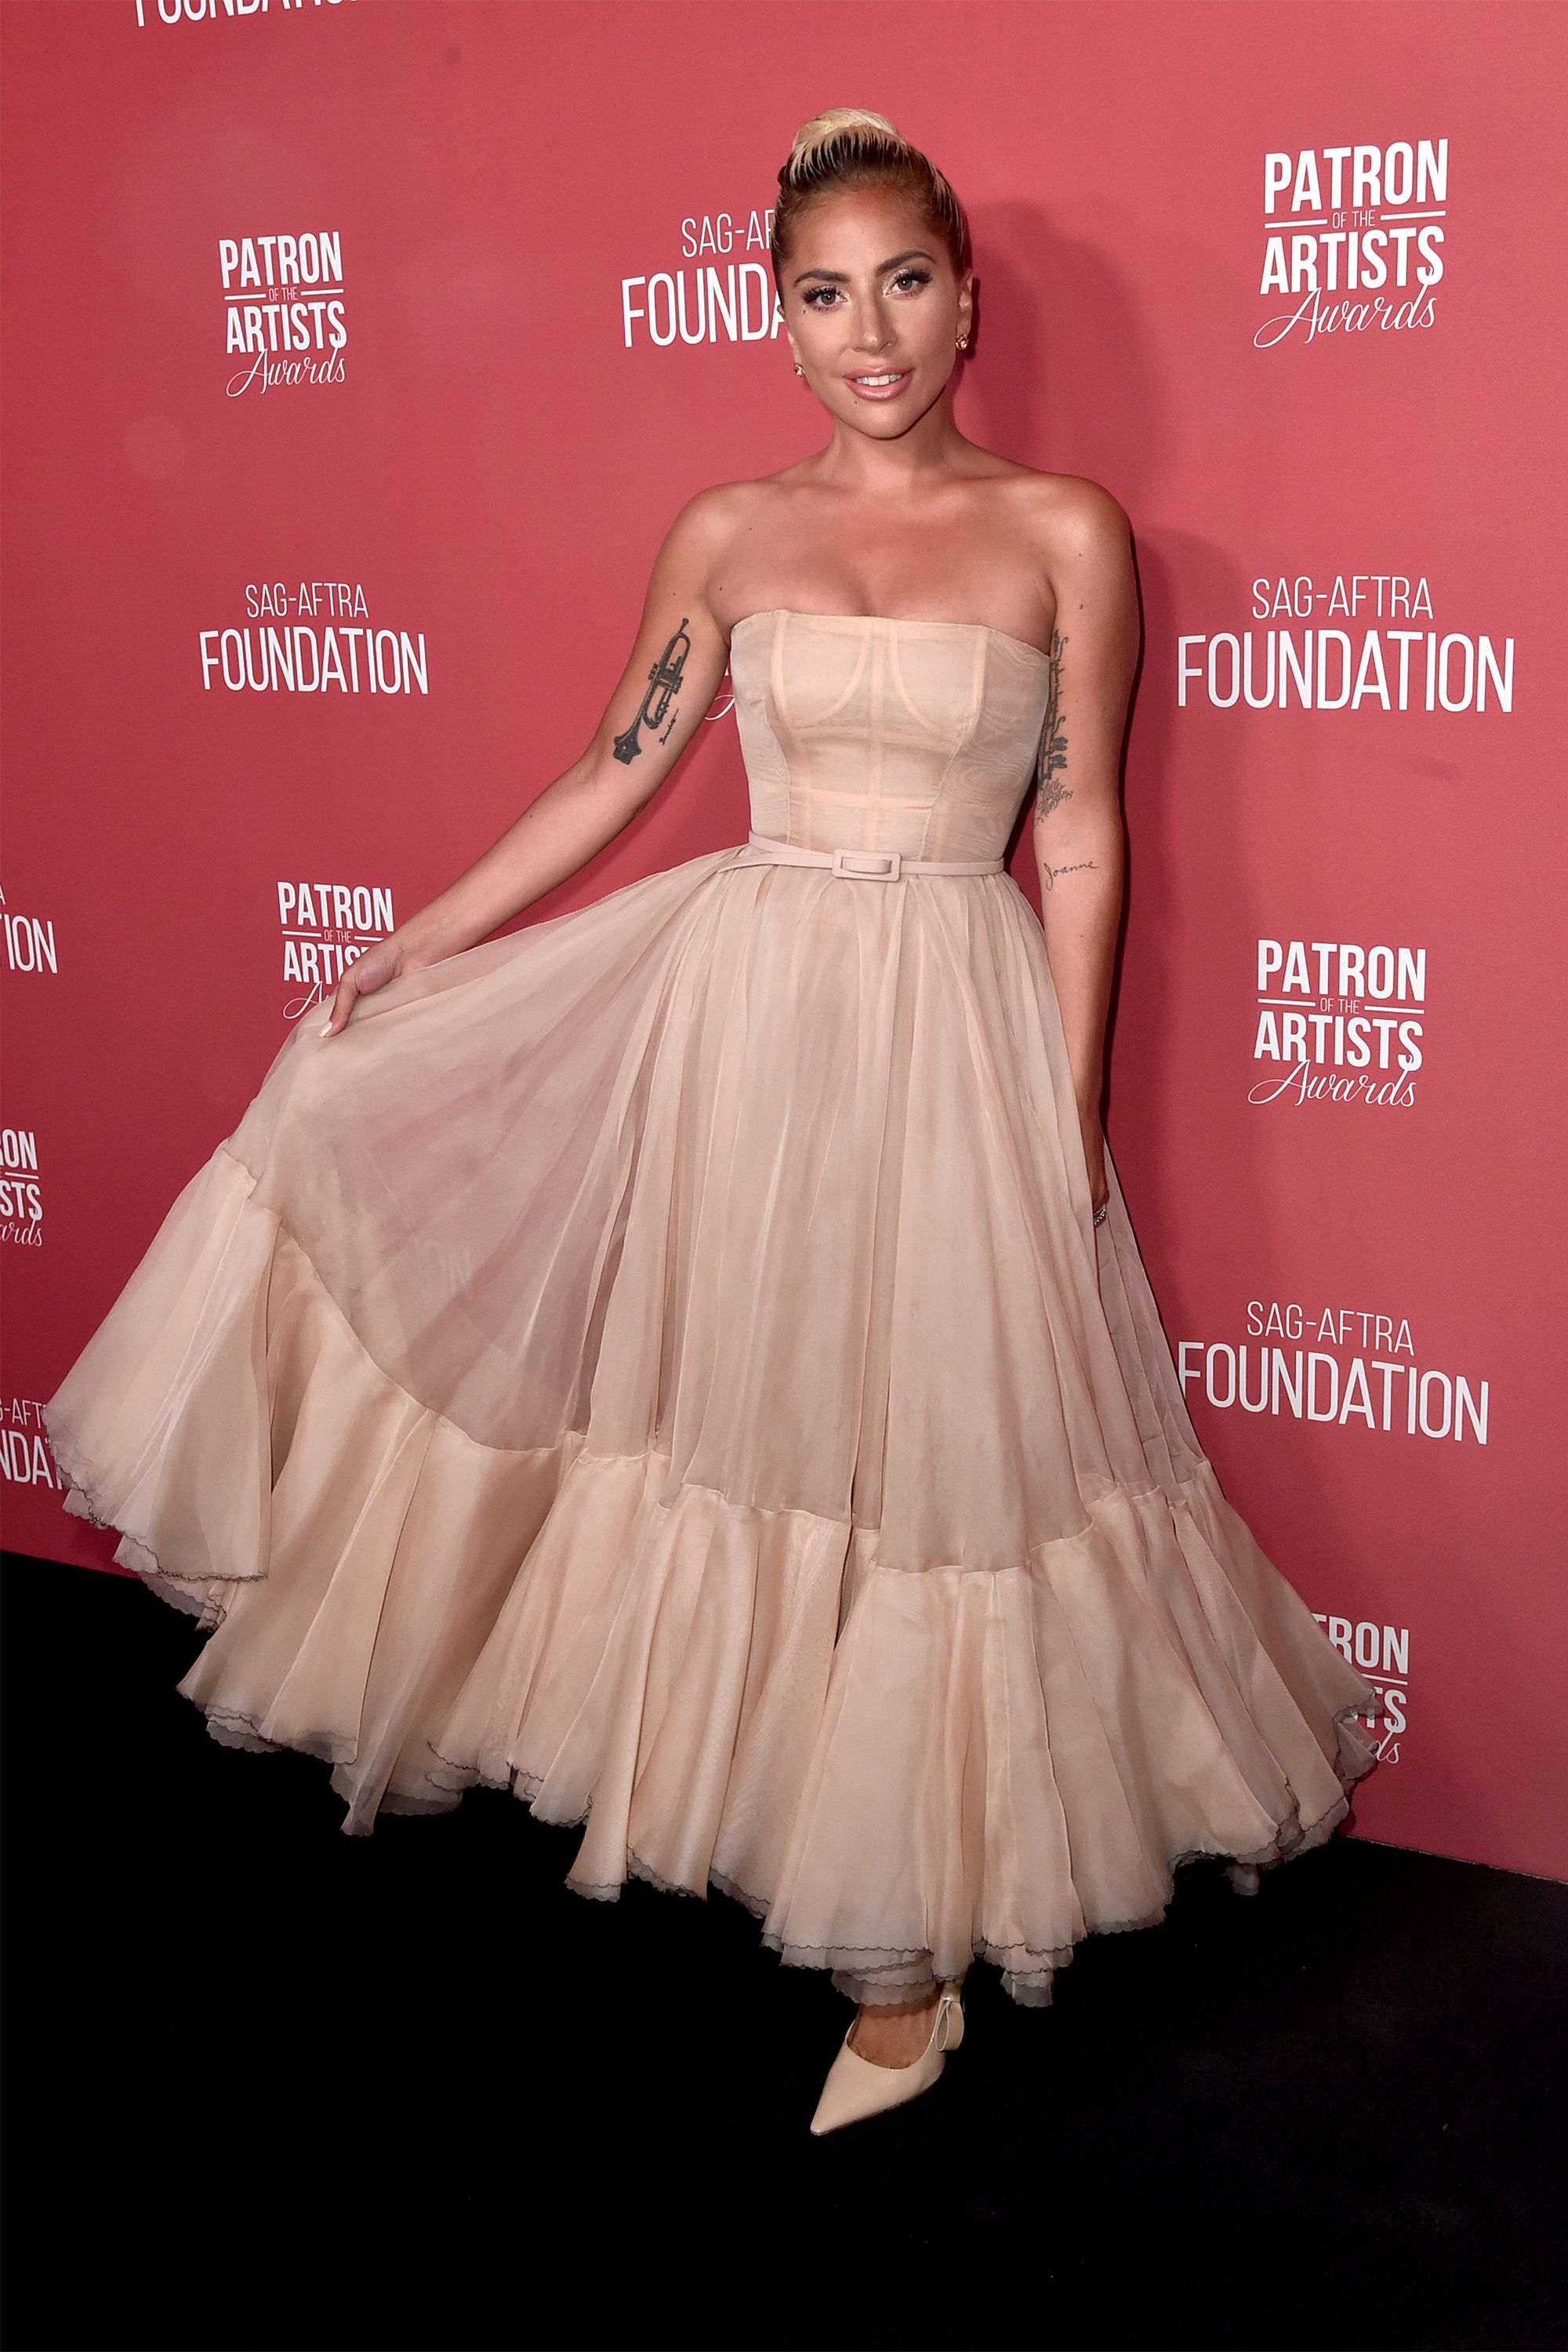 71f0643830a Lady Gaga s Best Style Moments - Lady Gaga Outfits and Best Fashion Looks